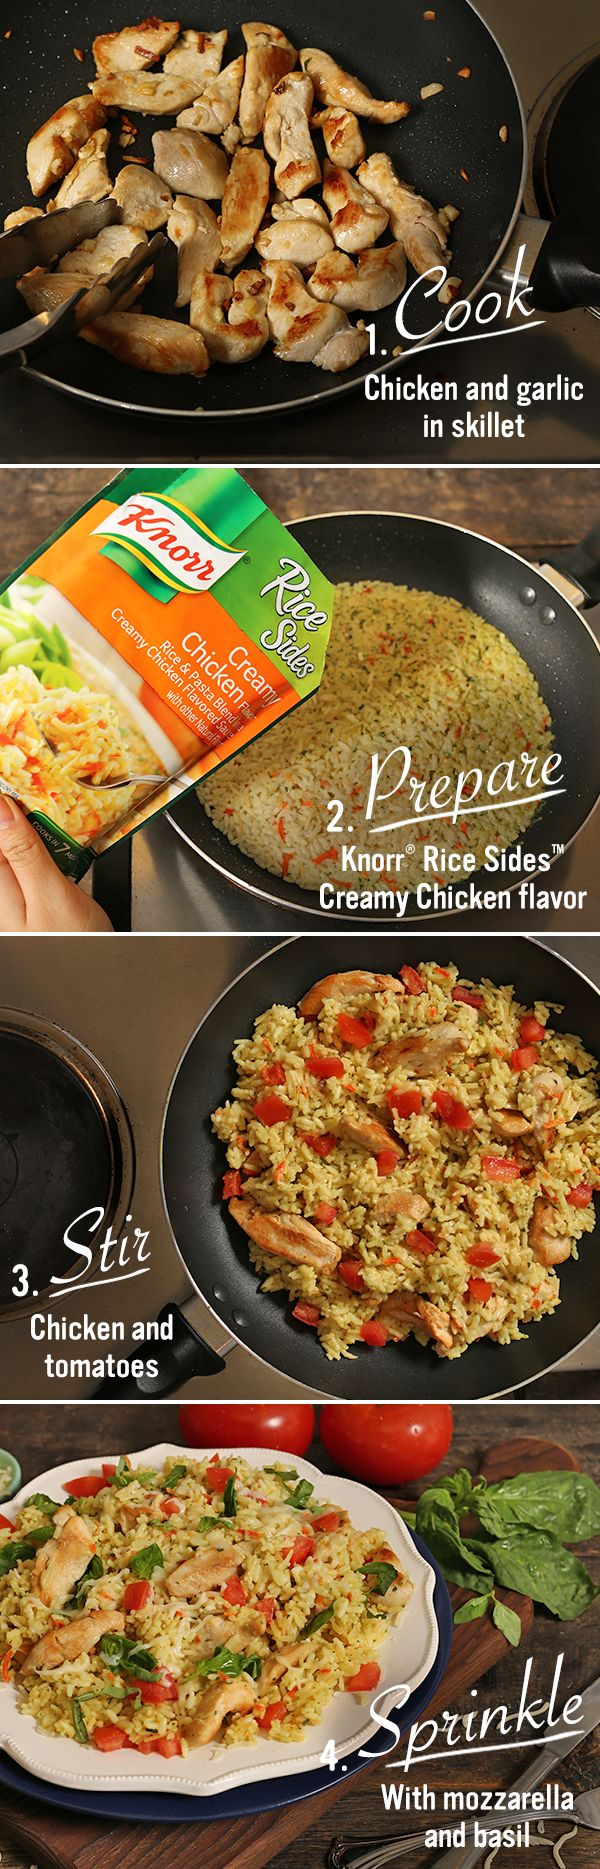 Make your weeknight dinner extra special with our easy and delicious Creamy Bruschetta Chicken recipe! Heat oil in large nonstick skillet over medium-high heat and cook chicken, stirring frequently, until chicken is thoroughly cooked, about 4 minutes, adding garlic during the last 30 seconds of cook time. Remove and set aside. Prepare Knorr® Rice Sides™ - Creamy Chicken flavor in same skillet according to package directions. Stir in chicken and tomatoes. Sprinkle with mozzarella and basil.